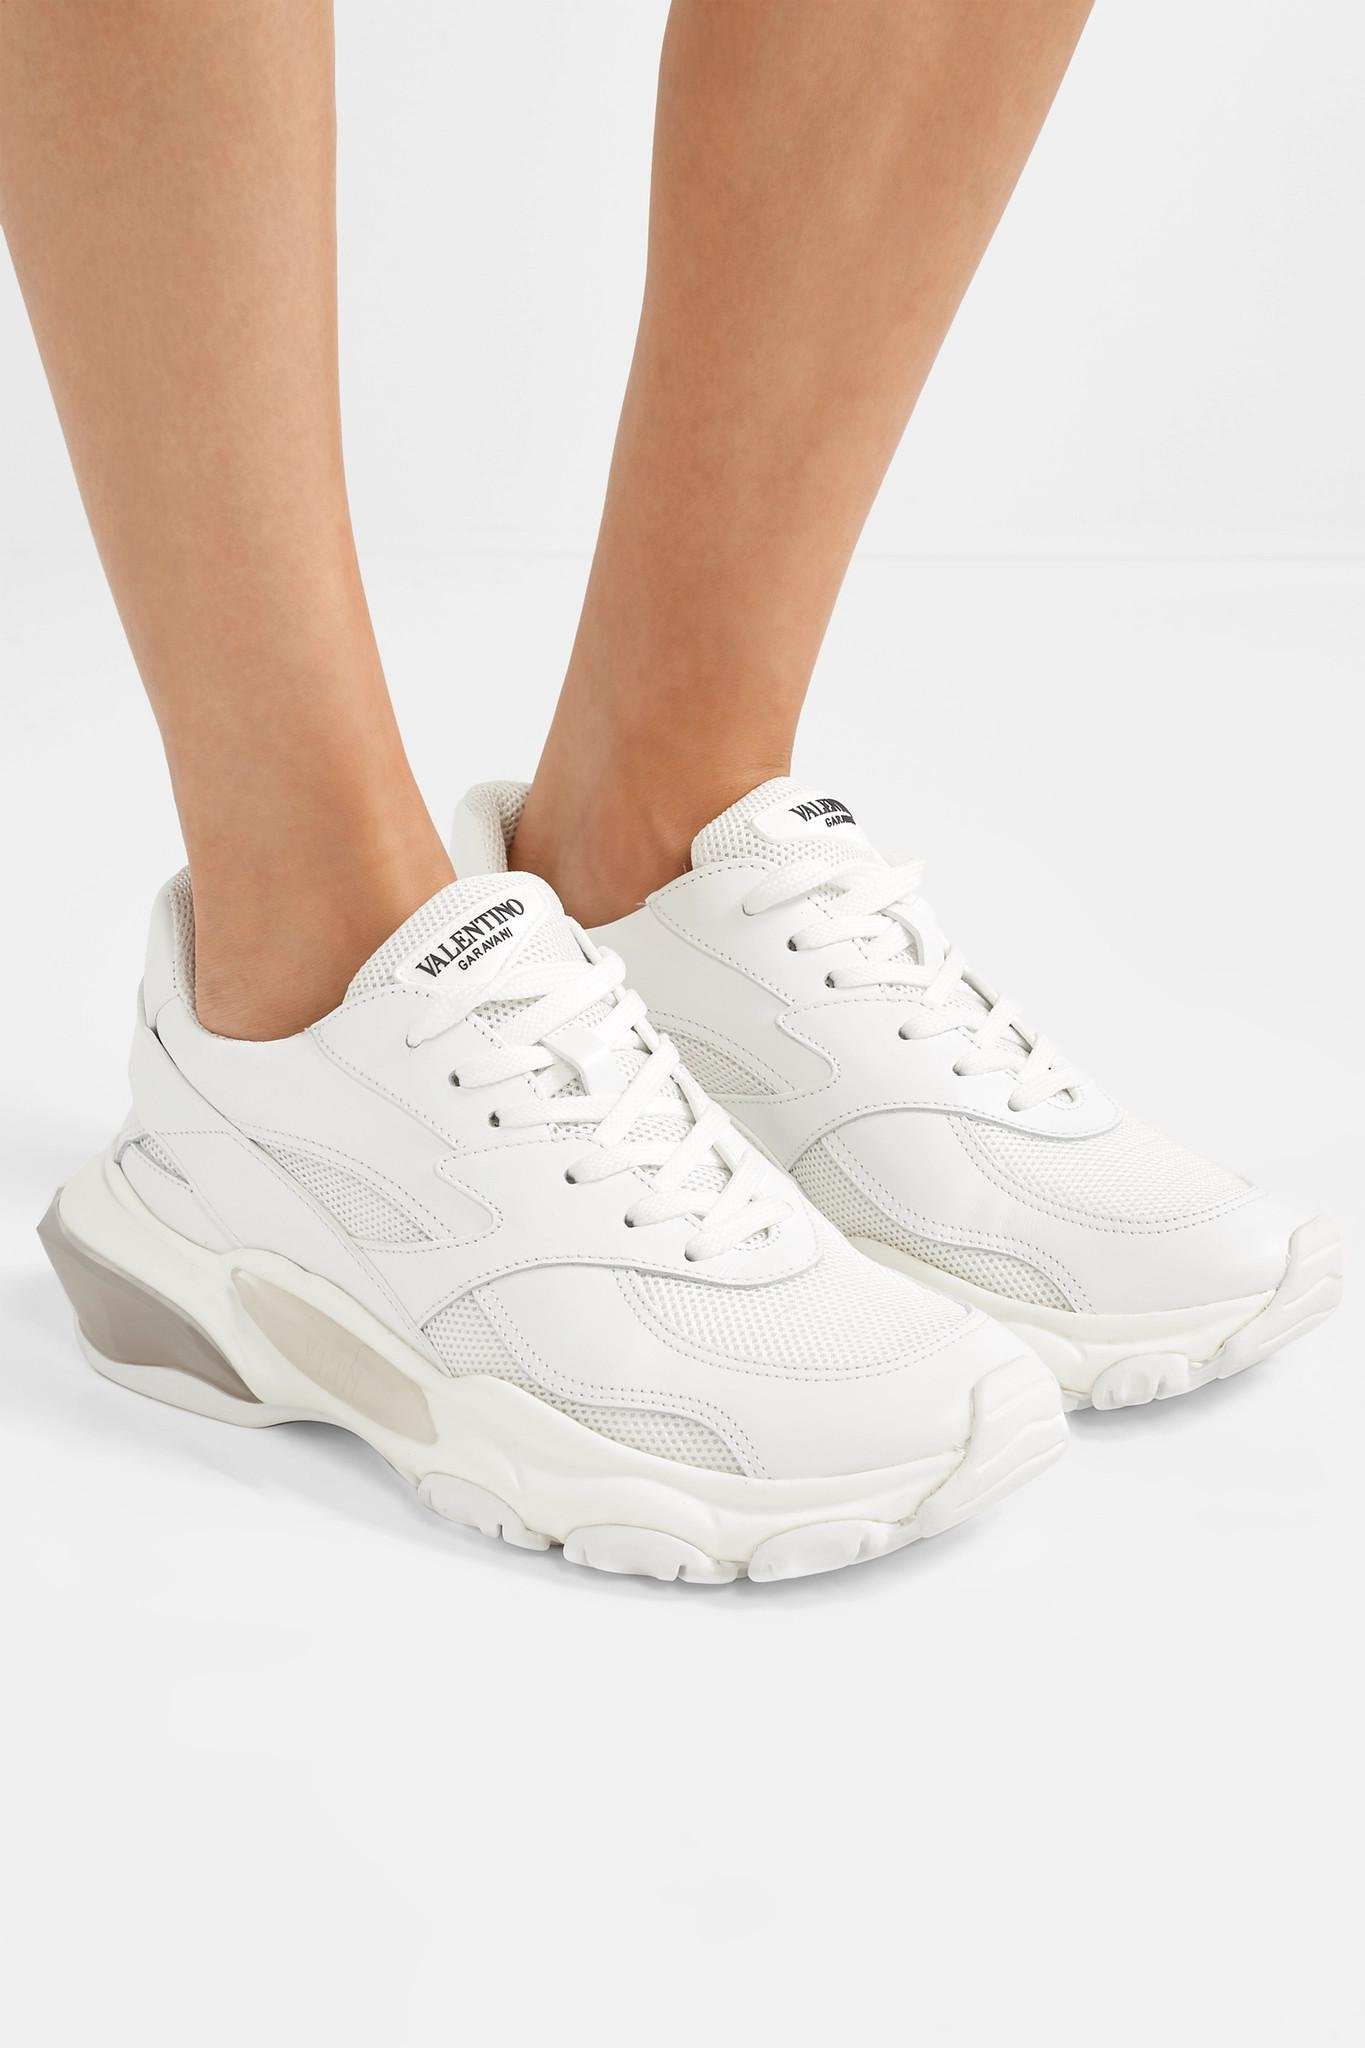 31187094f7c2d Valentino Garavani Bounce Leather And Mesh Sneakers in White - Lyst